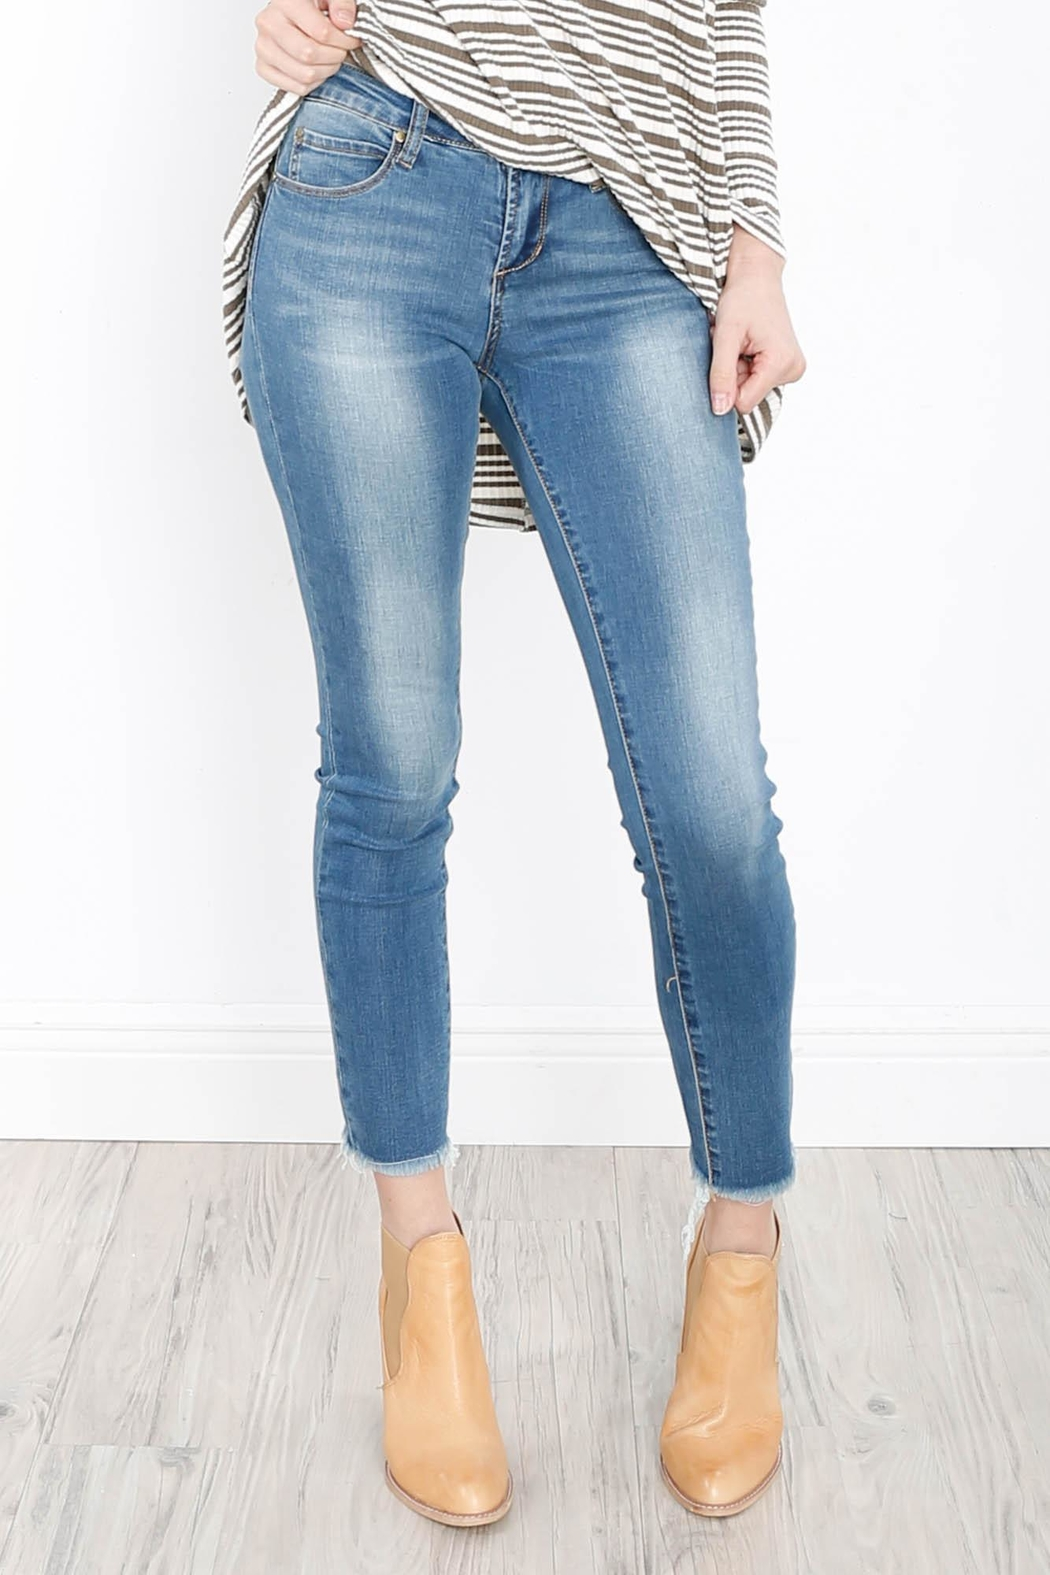 Articles of Society Carly Skinny Crop Jeans - Main Image